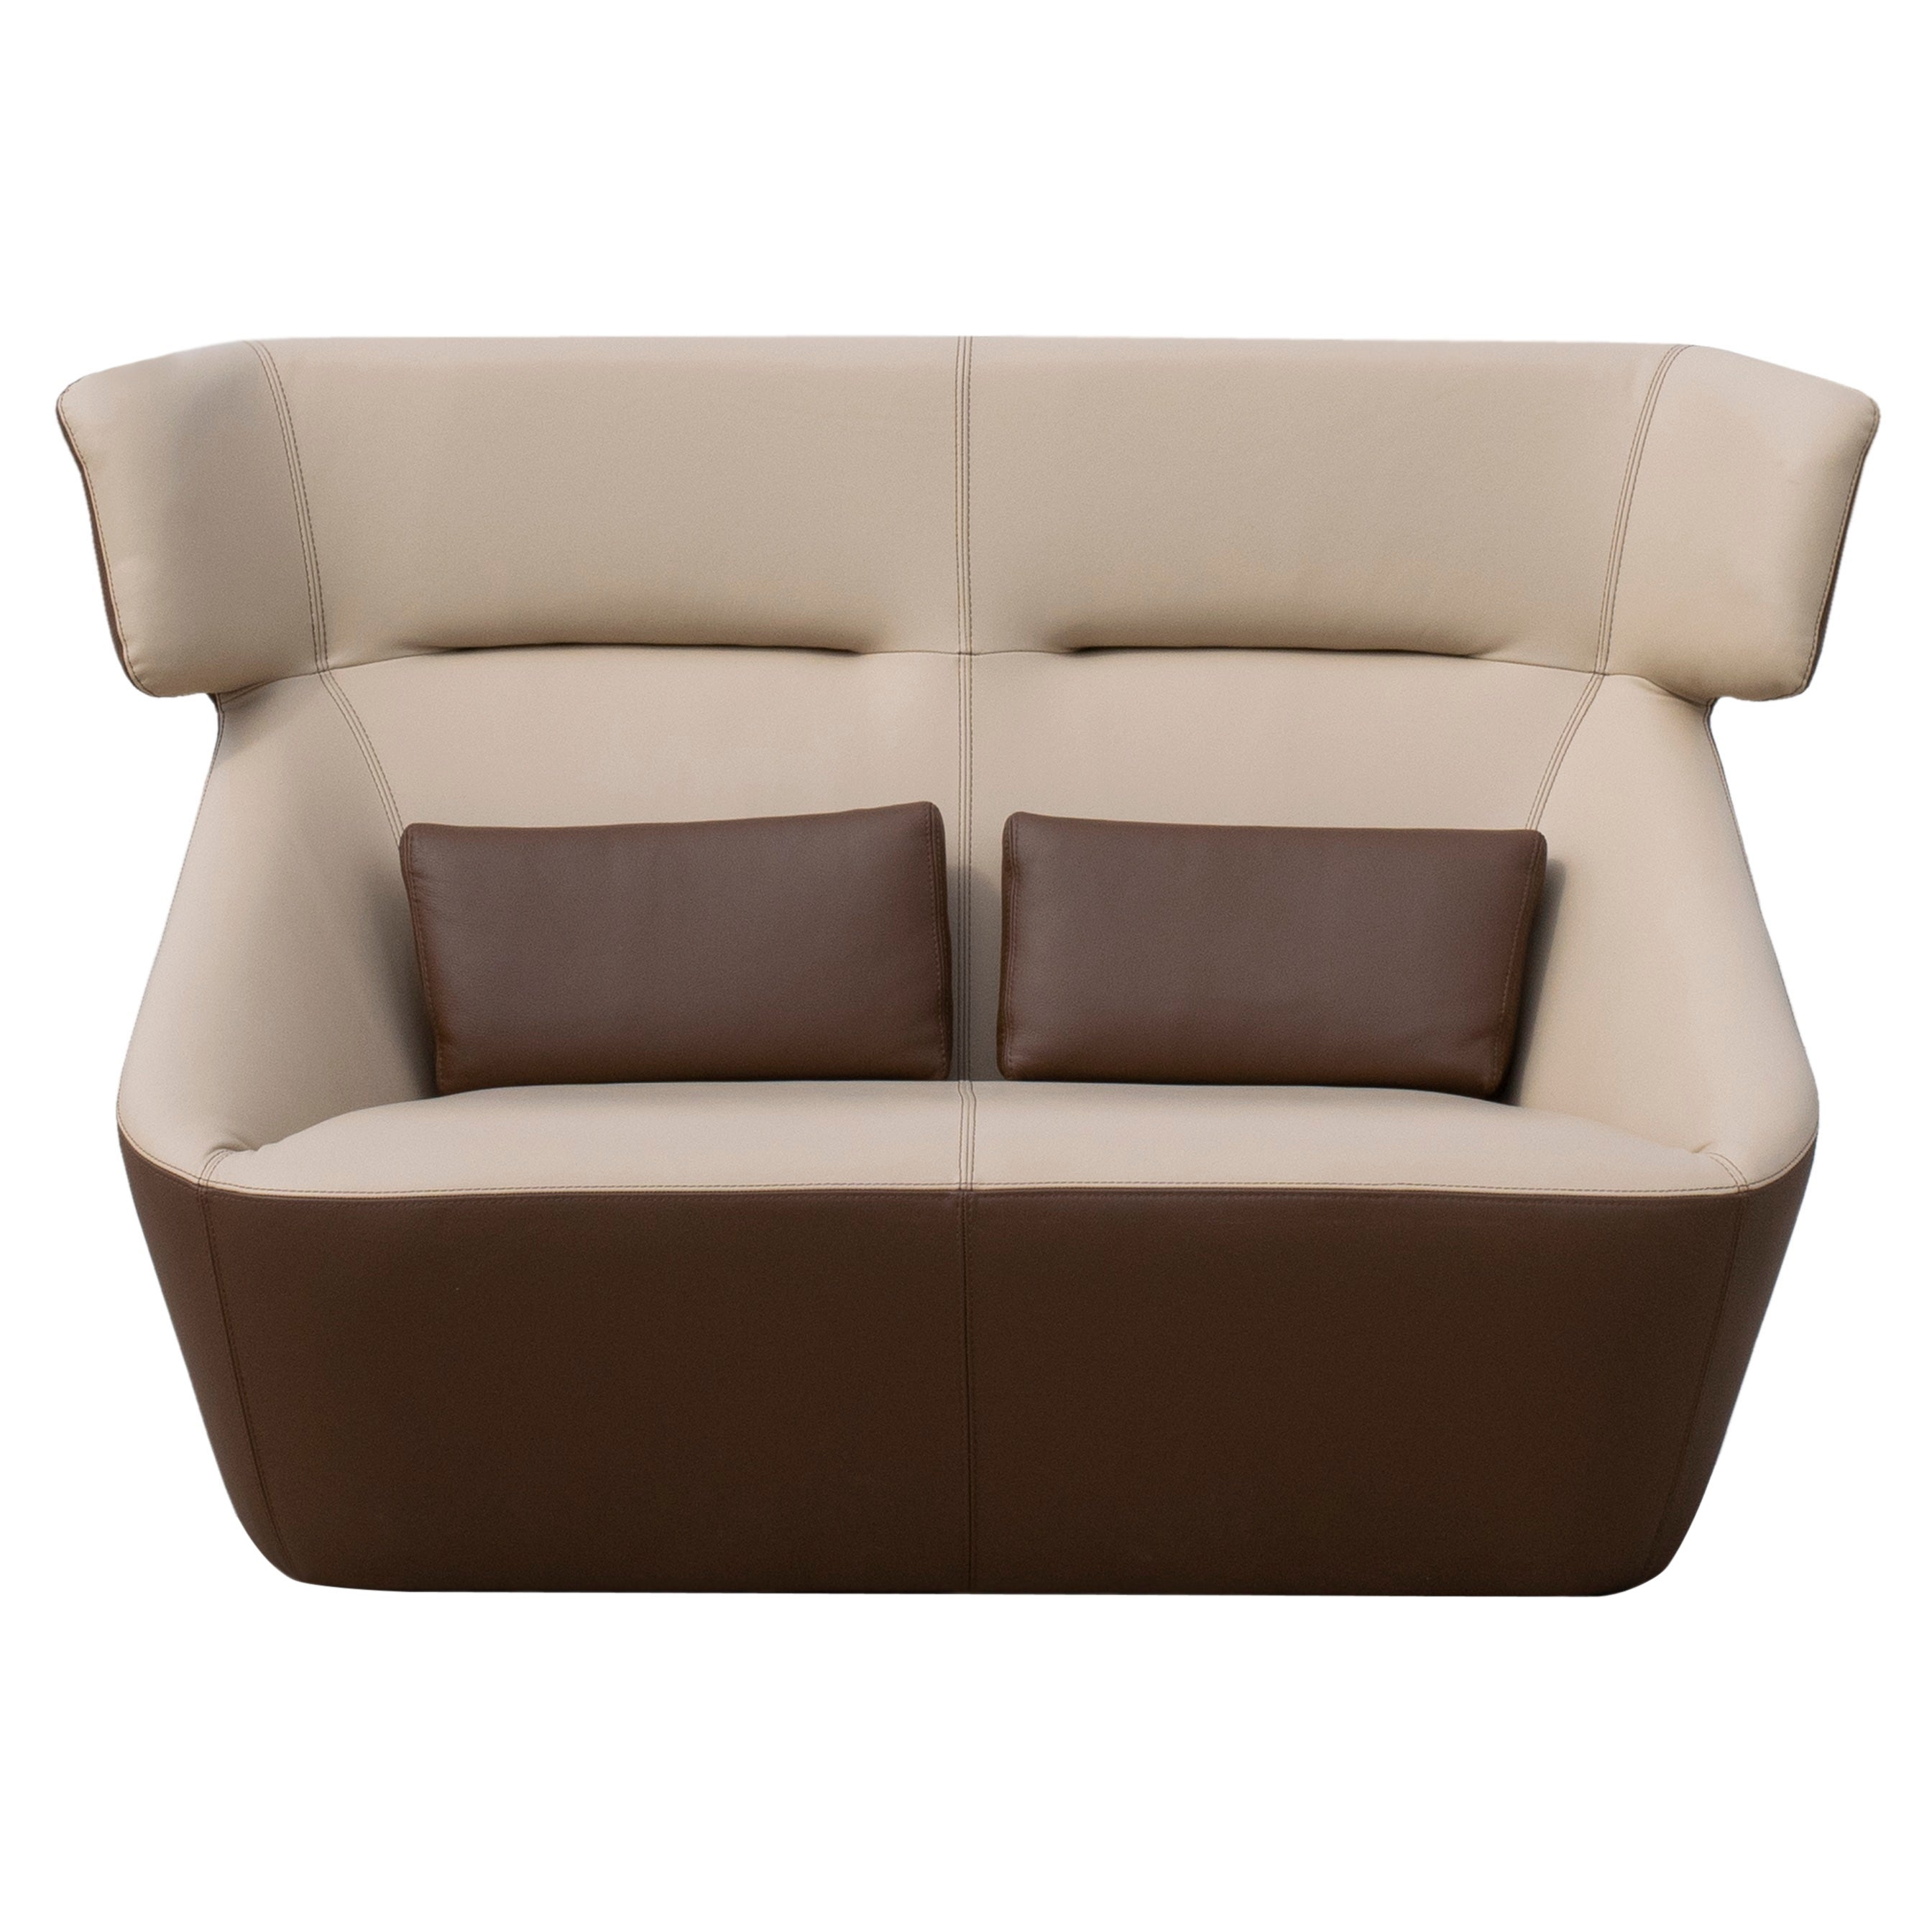 Prince Spencer Sofa V2 with Two-Tone (Beige-Brown) Italian Leather Upholstery